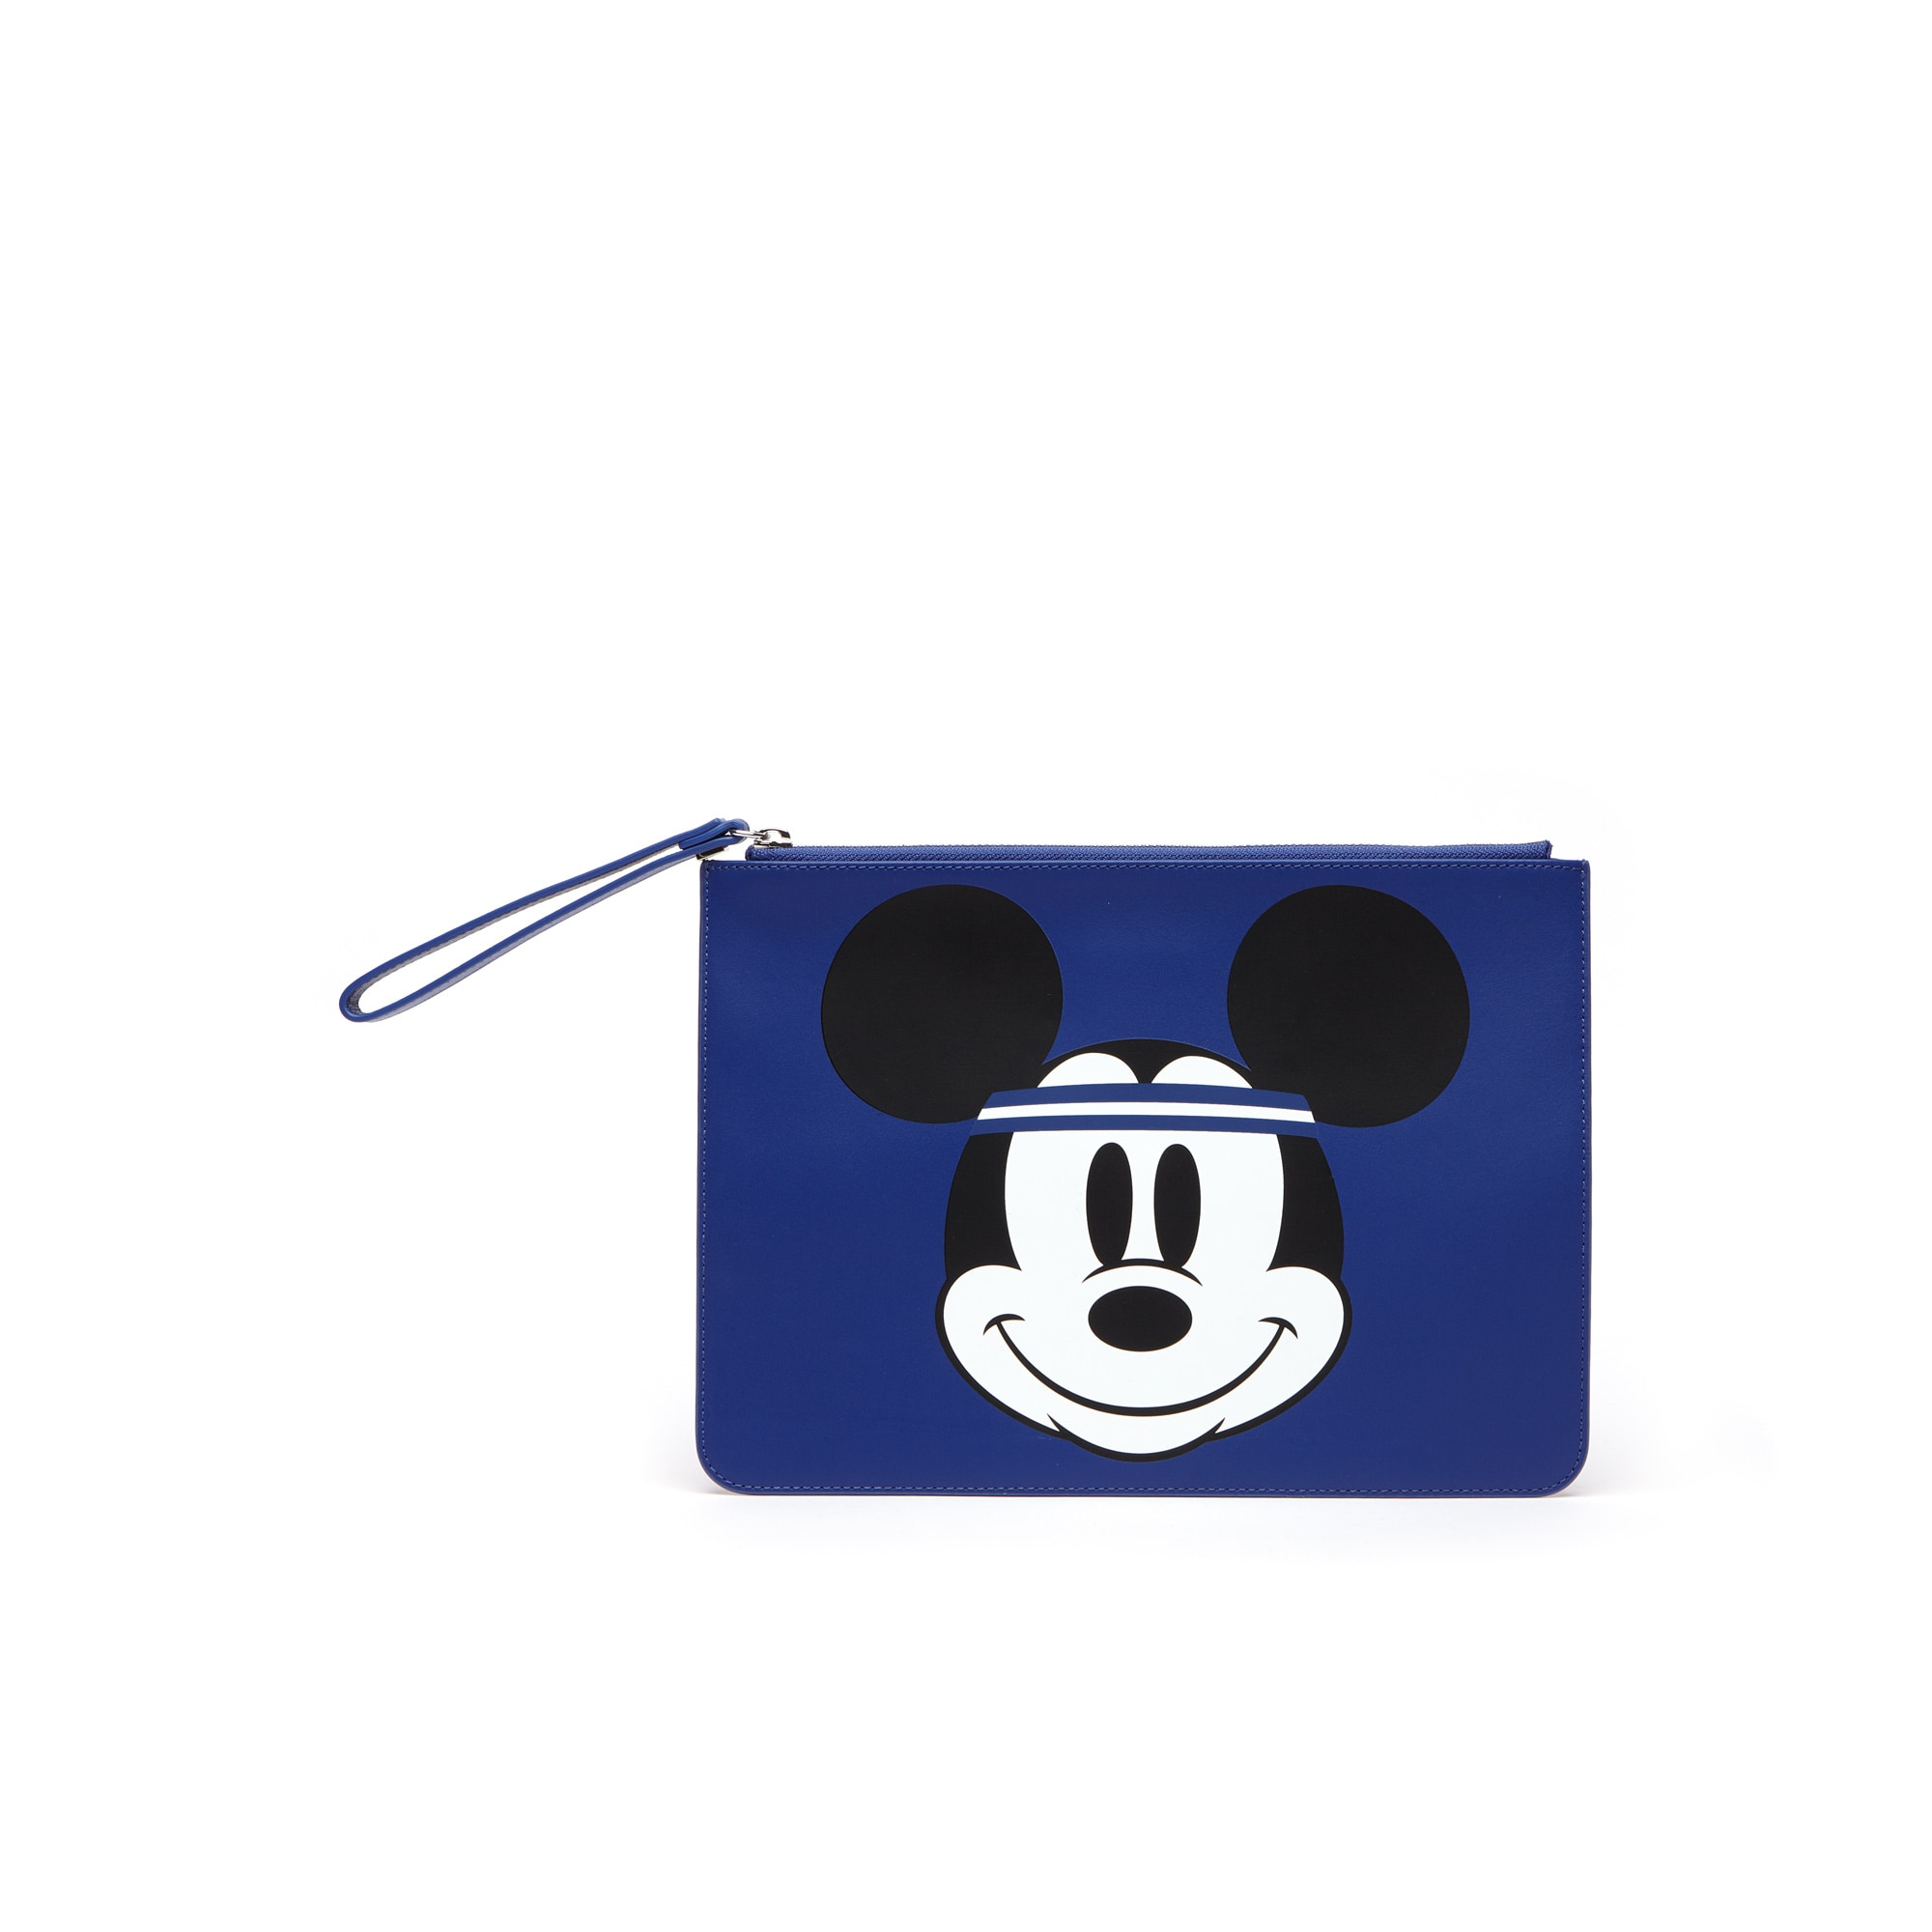 Pochette in pelle con cerniera e stampa Topolino Disney Holiday Collector da donna